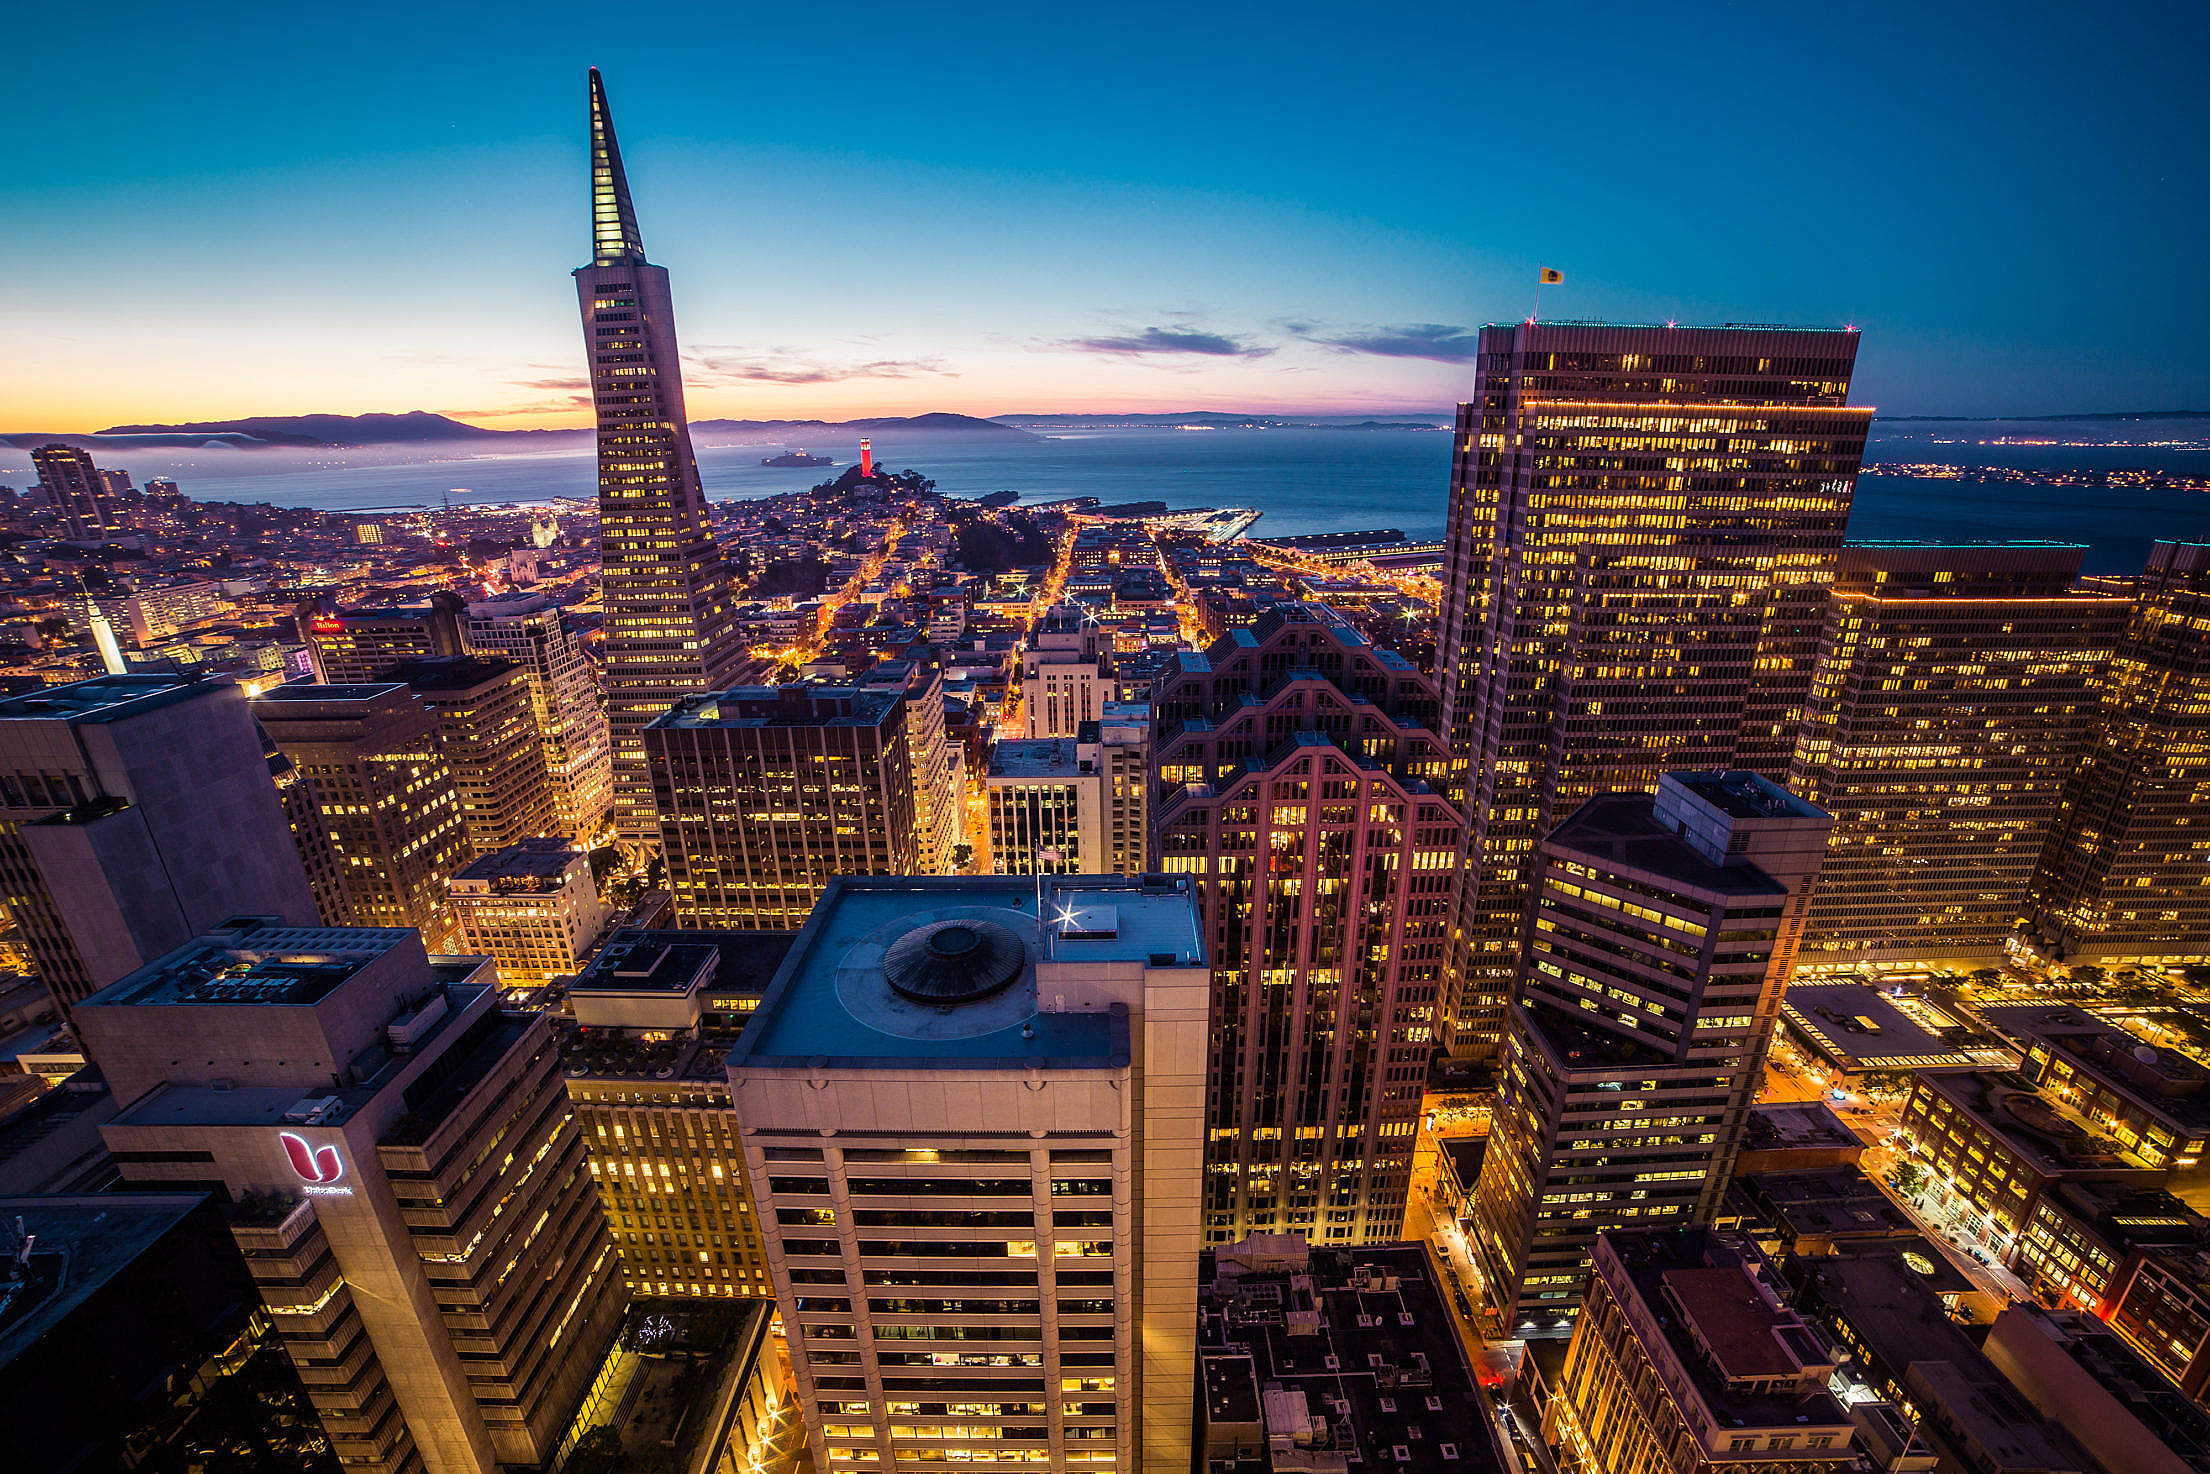 San Francisco Financial Disctrict Skyscrapers Cityscape at Night Free Stock Photo